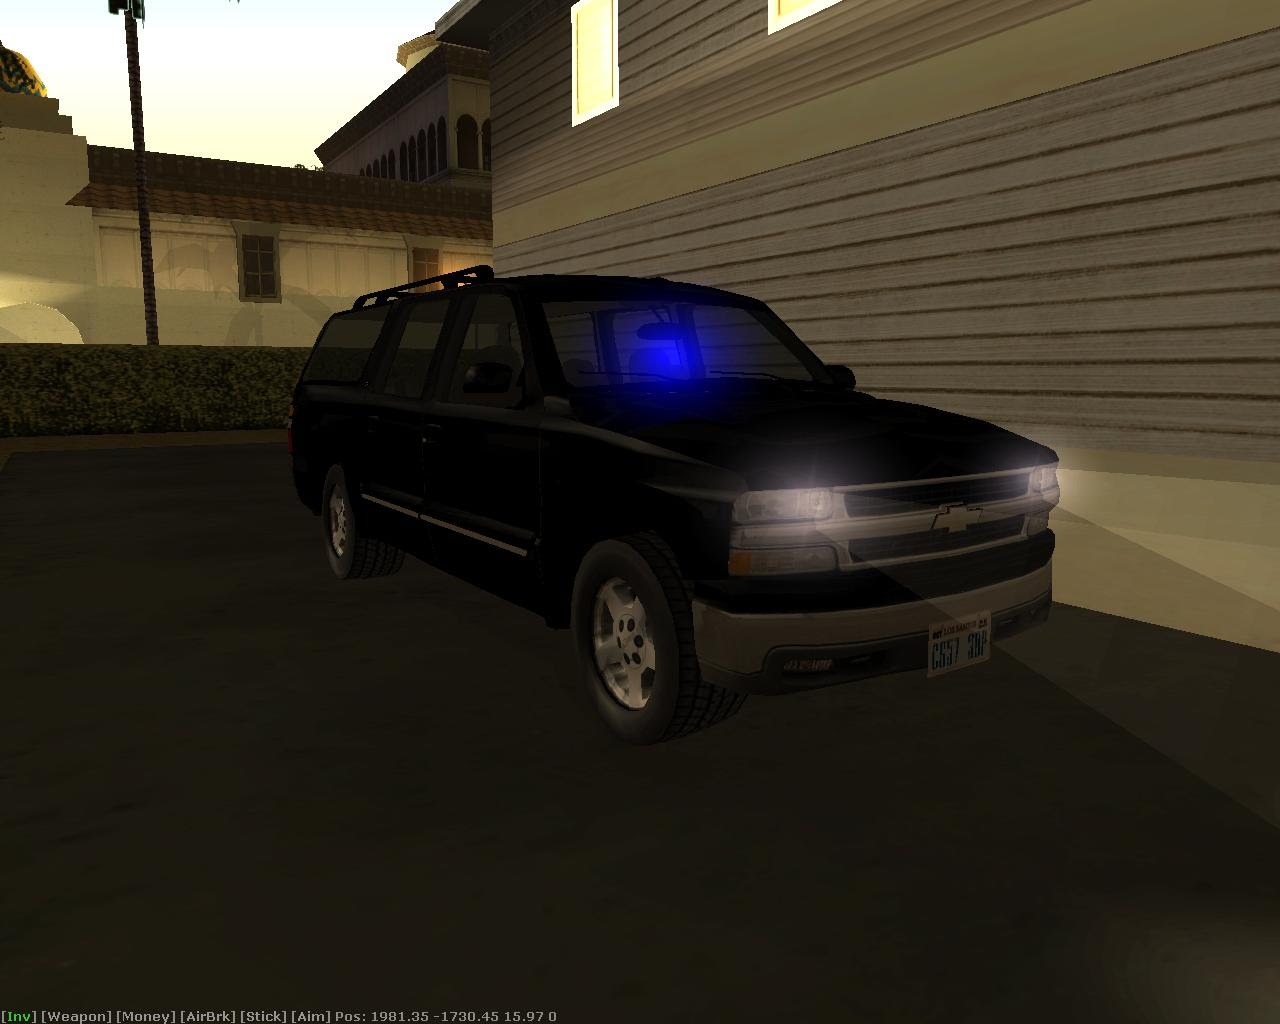 ������ ���� GTA:SanAndreas ����� ���� gallery100.jpg